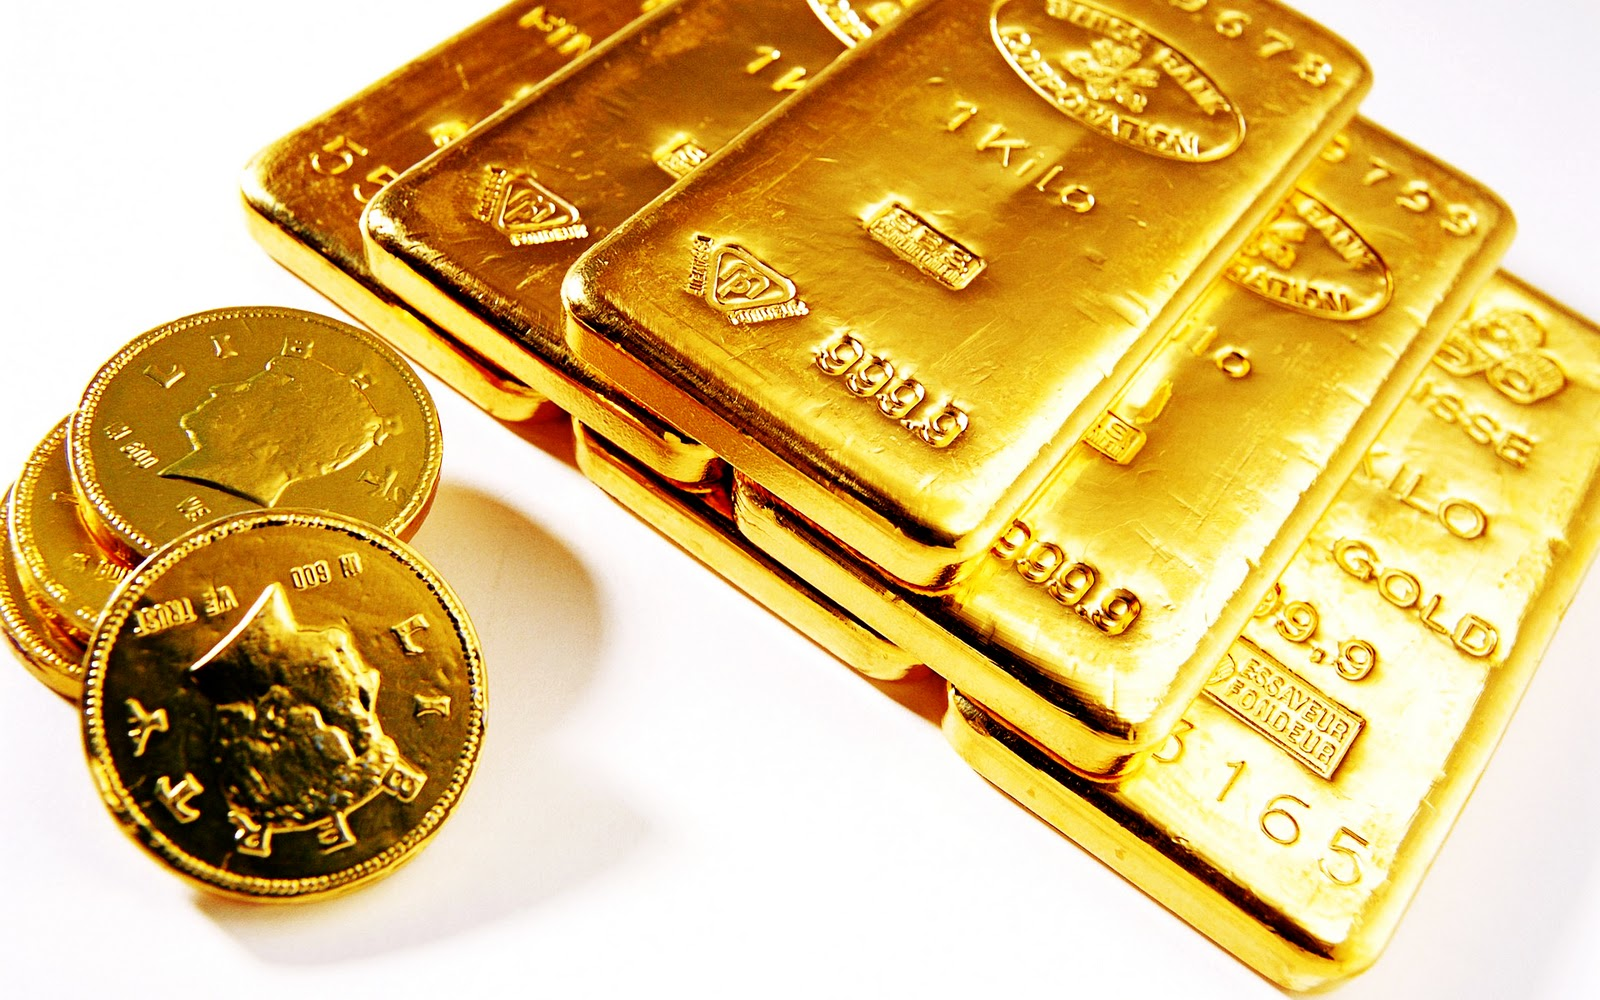 Gold bars and coins hd wallpapers stock photos hd wallpapers backgrounds photos pictures - Picture of bars ...